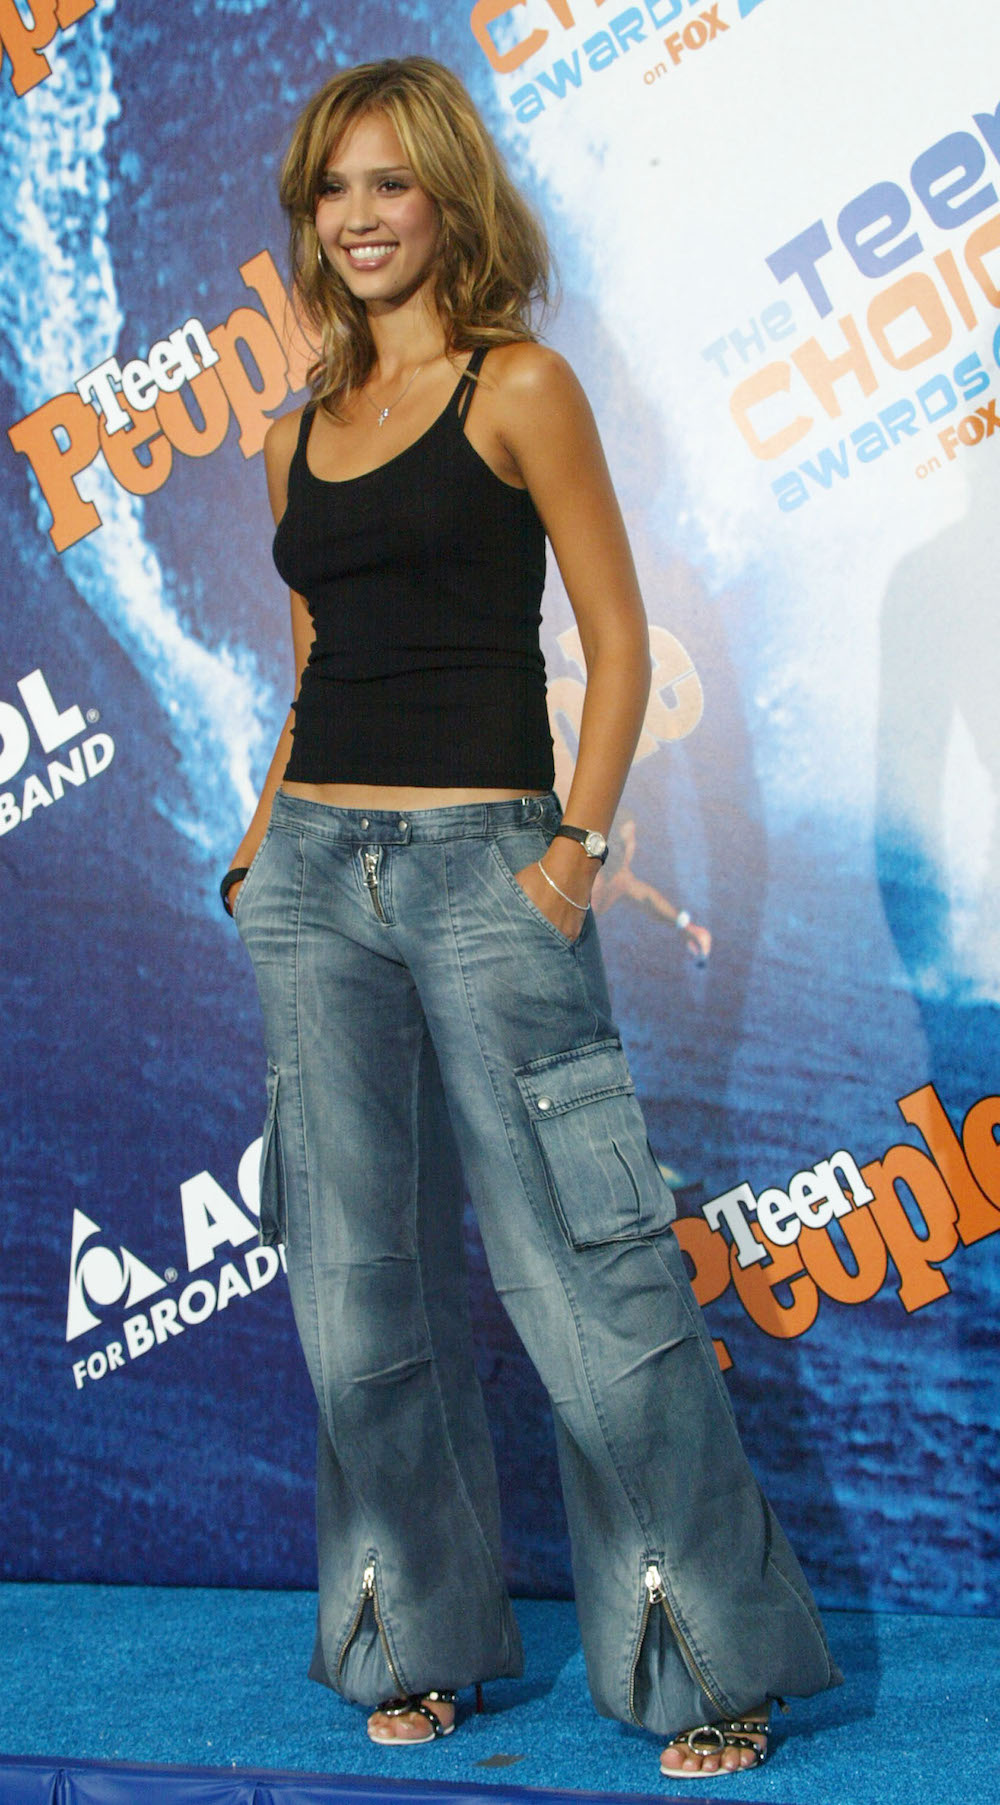 Jessica Alba Used To Think Baggy Cargo Pants Were The Coolest Just Like You